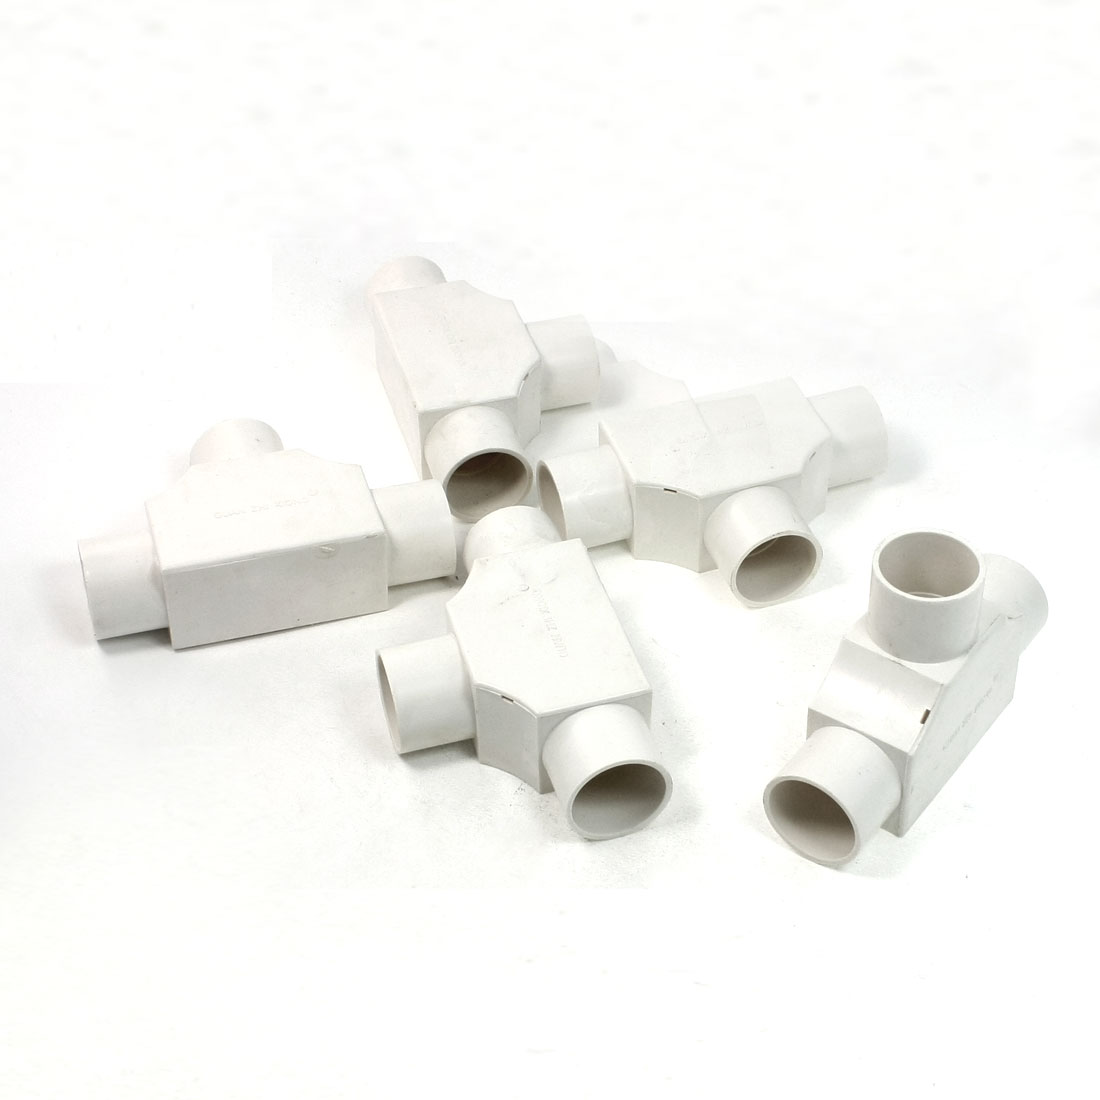 5 Pcs 25mm Hole 3 Ways White PVC Pipe Tee Shaped Connectors w Cover